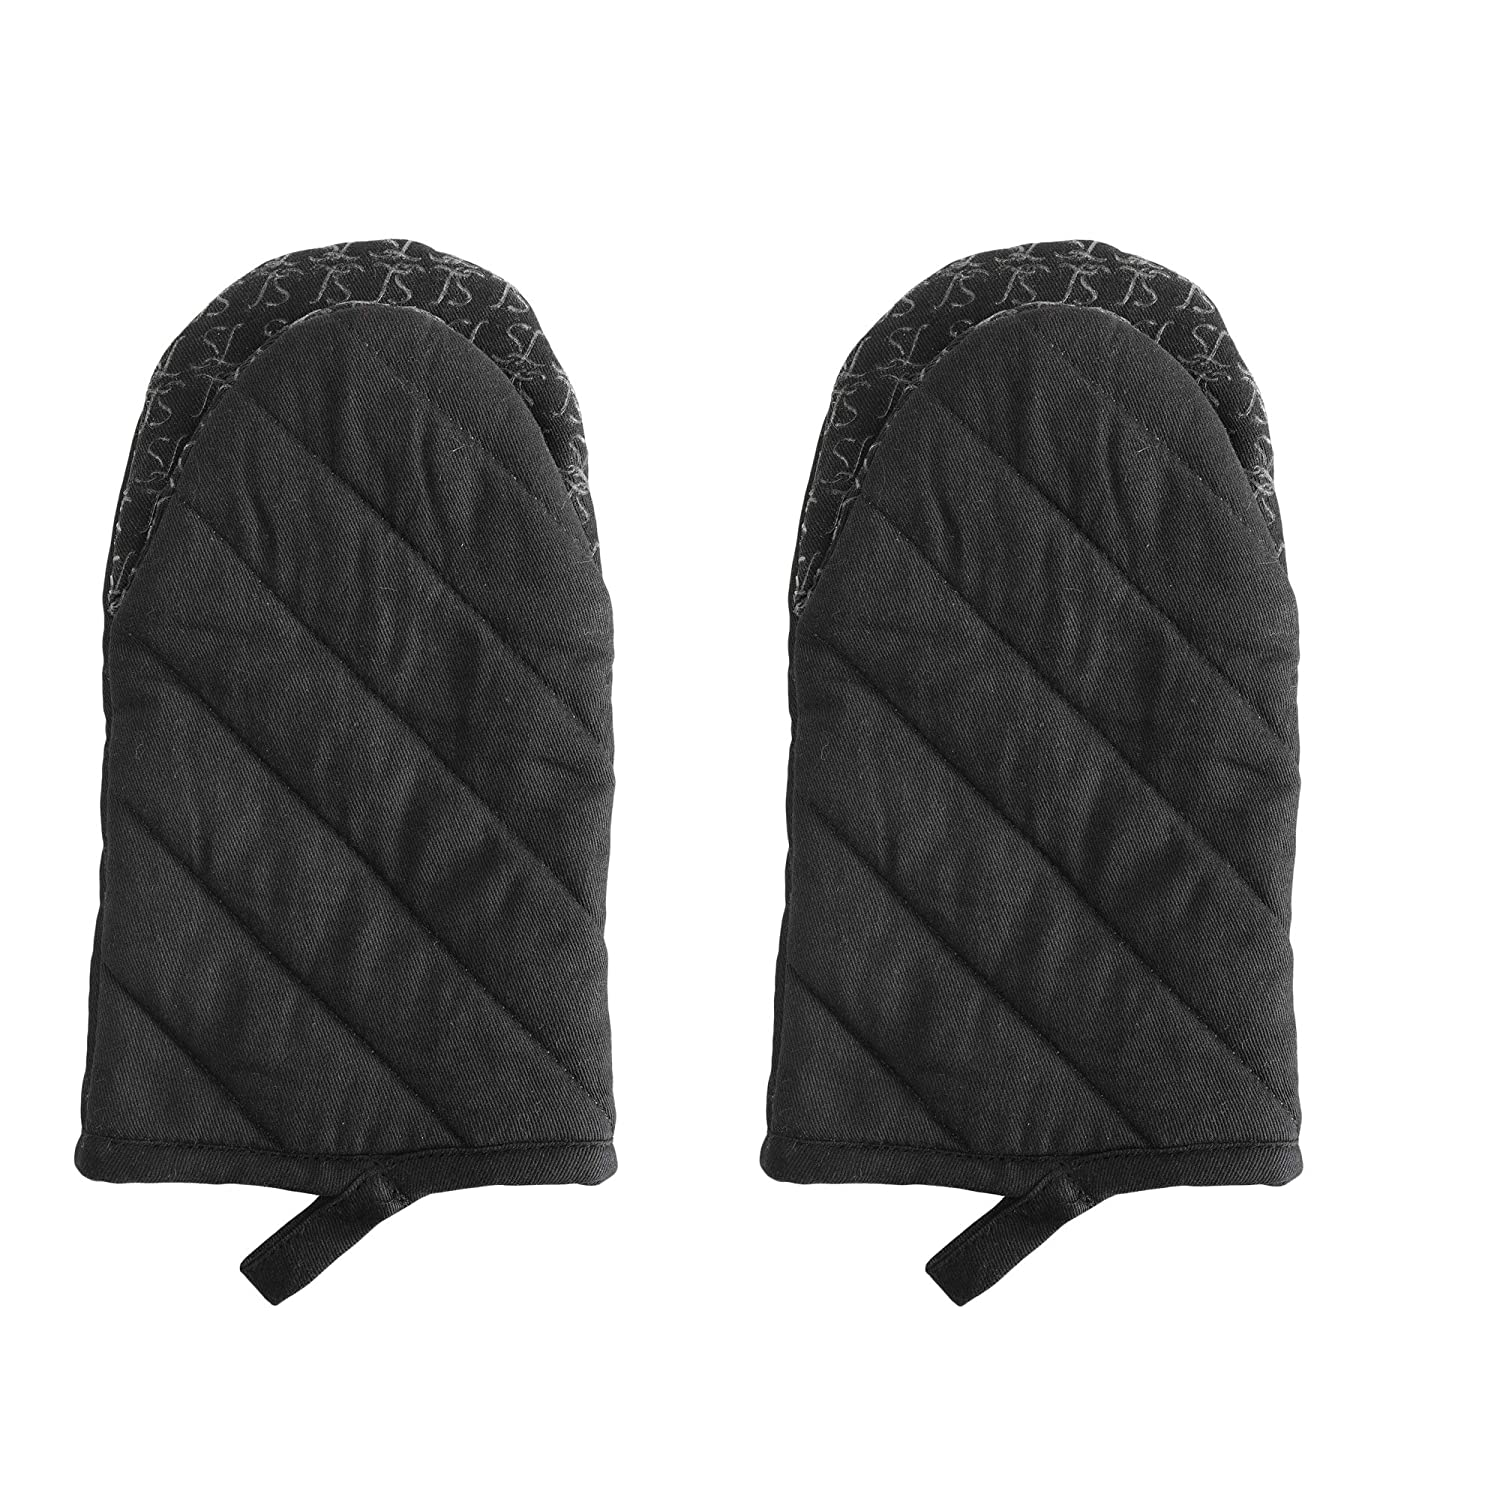 Oven Mitt, Solid Black Color Set Of 2. Heat Resistant Cotton Quilted Oven Mitt Silicone Printed, Non Slip Grip, Terry Lining, Used For cooking, BBQ, Baking, Grilling. Machine Washable.